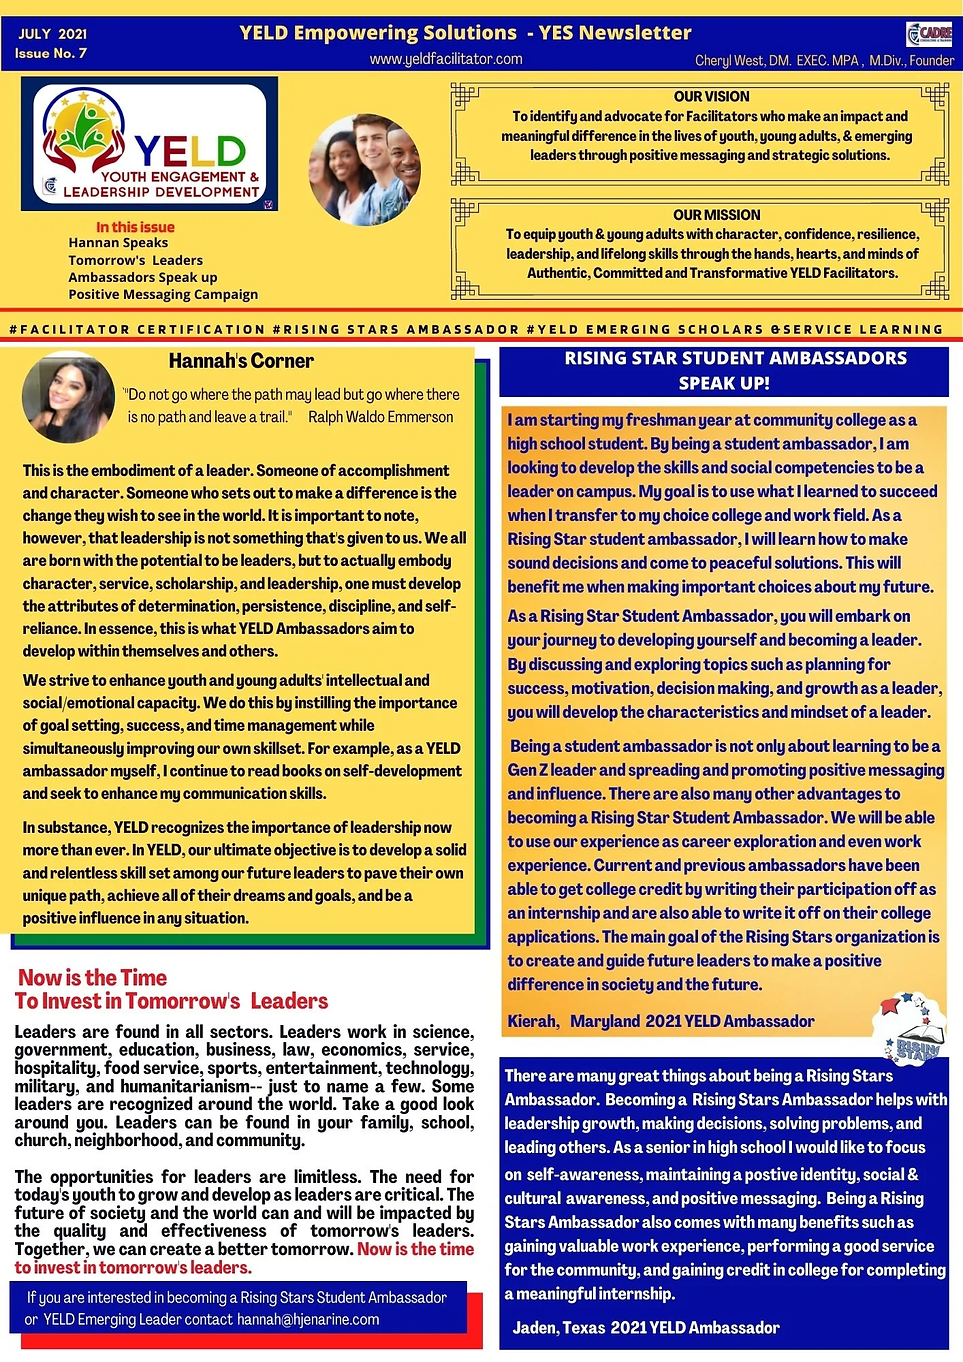 JULY 2021 MONTHLY NEWSLETTERS .jpg